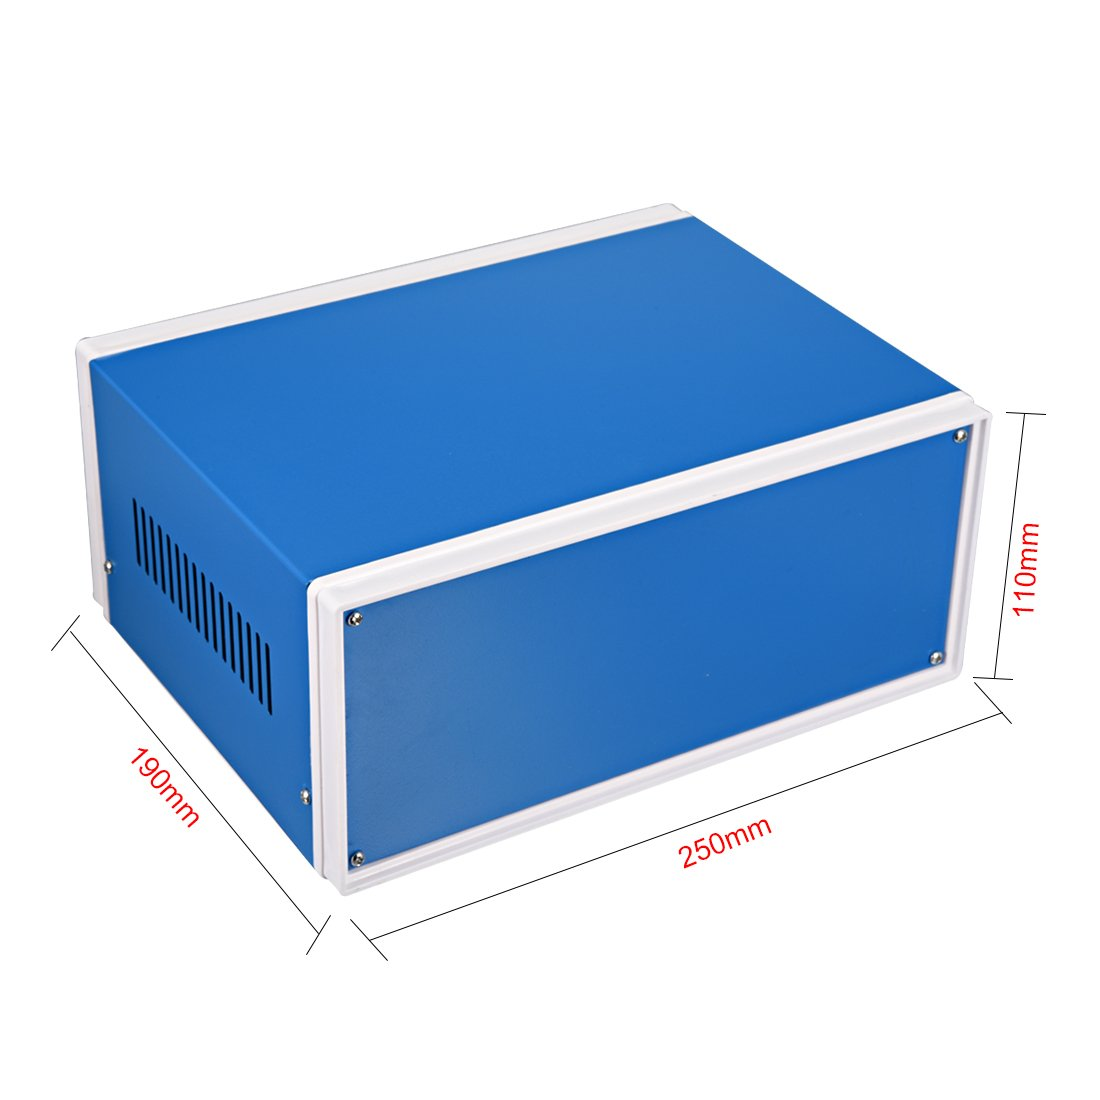 uxcell Metal Blue Project Junction Box Enclosure Case 200 x 165 x 90mm//7.87 x 6.5 x 3.54inch a18051400ux0049